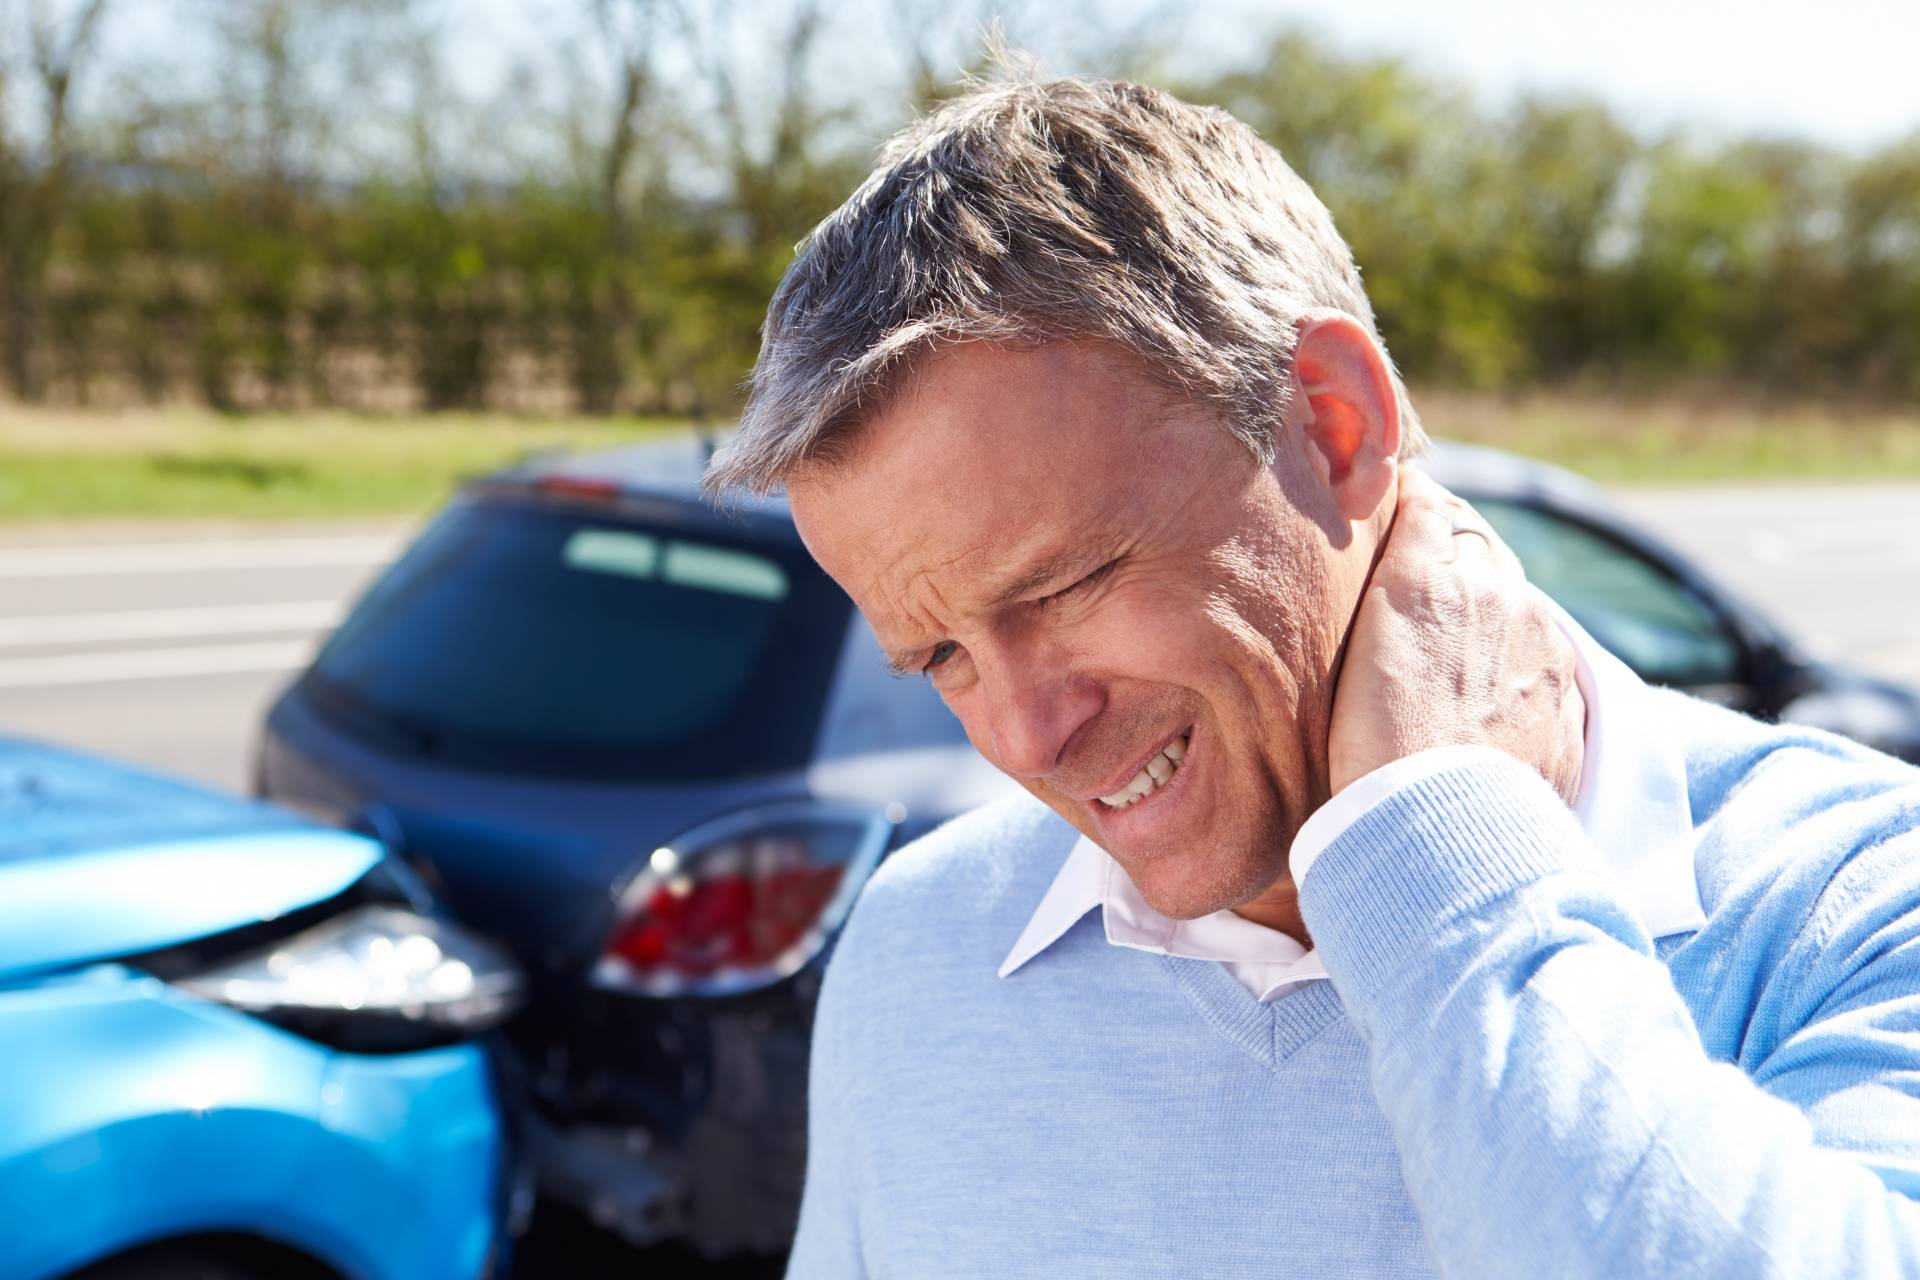 injured in an auto accident? Schedule a free consultation with our personal injury lawyers.